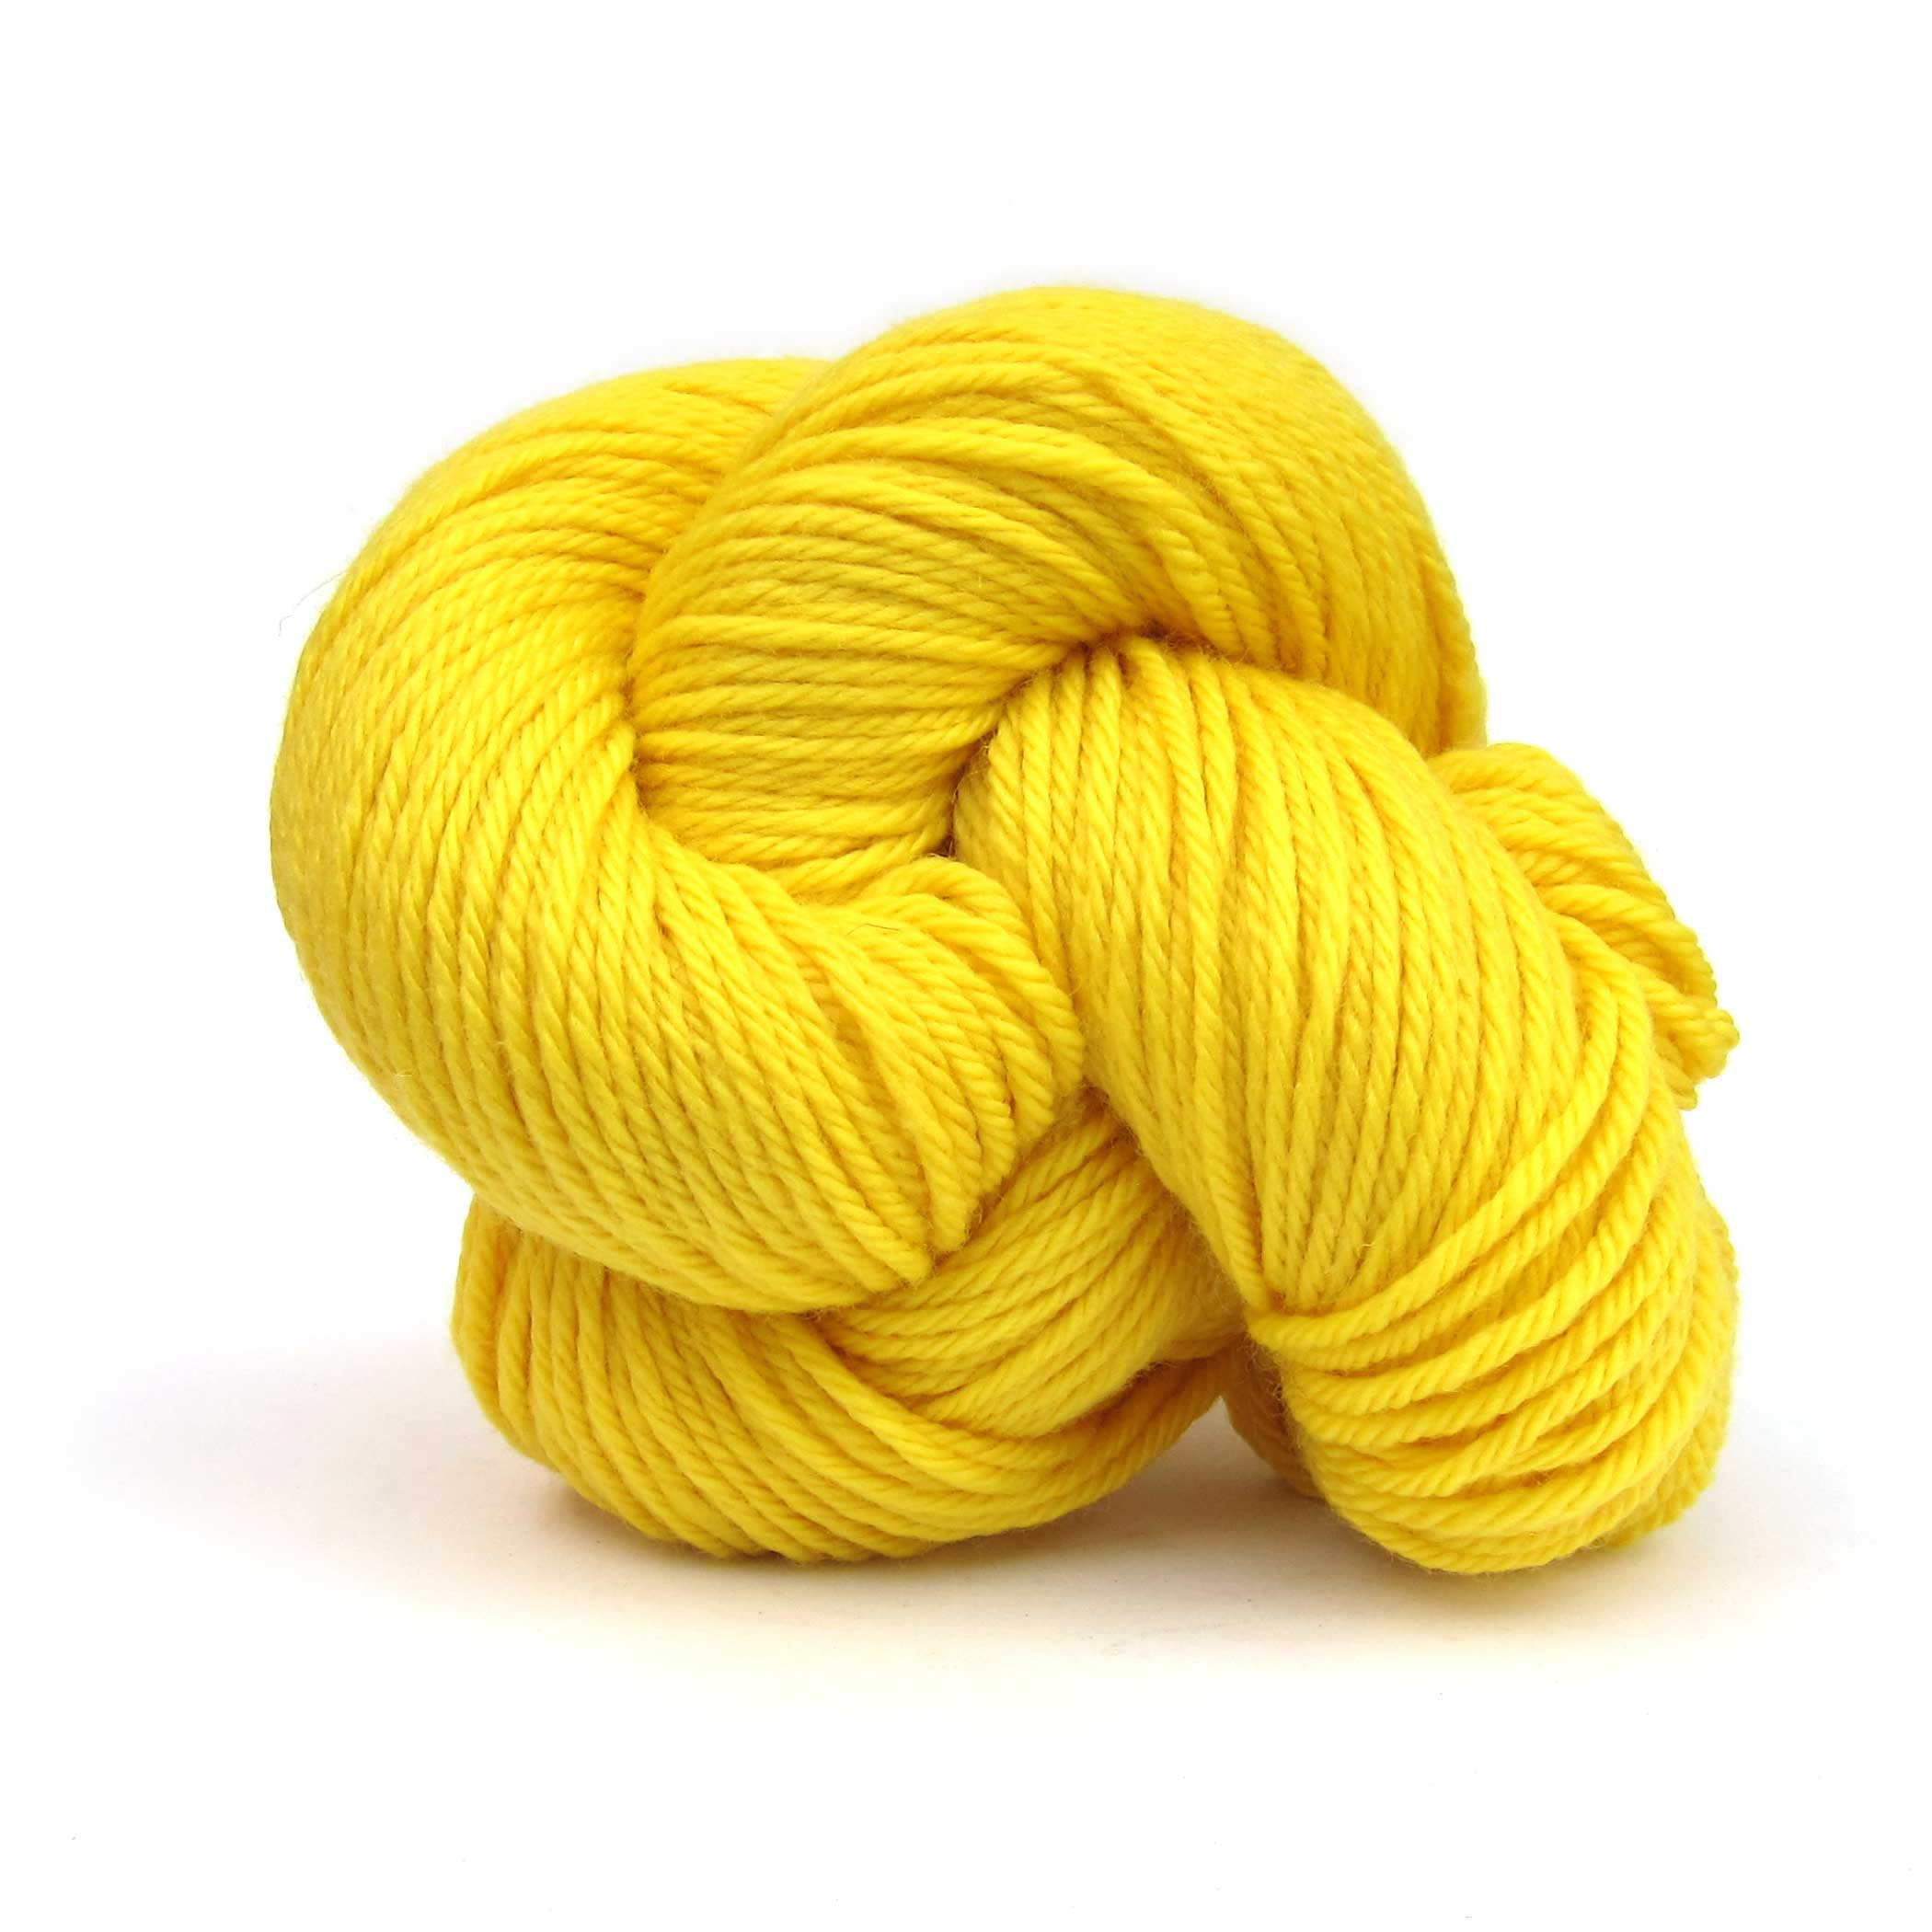 Lemon Louet Gems 100% Merino Superwash Yarn